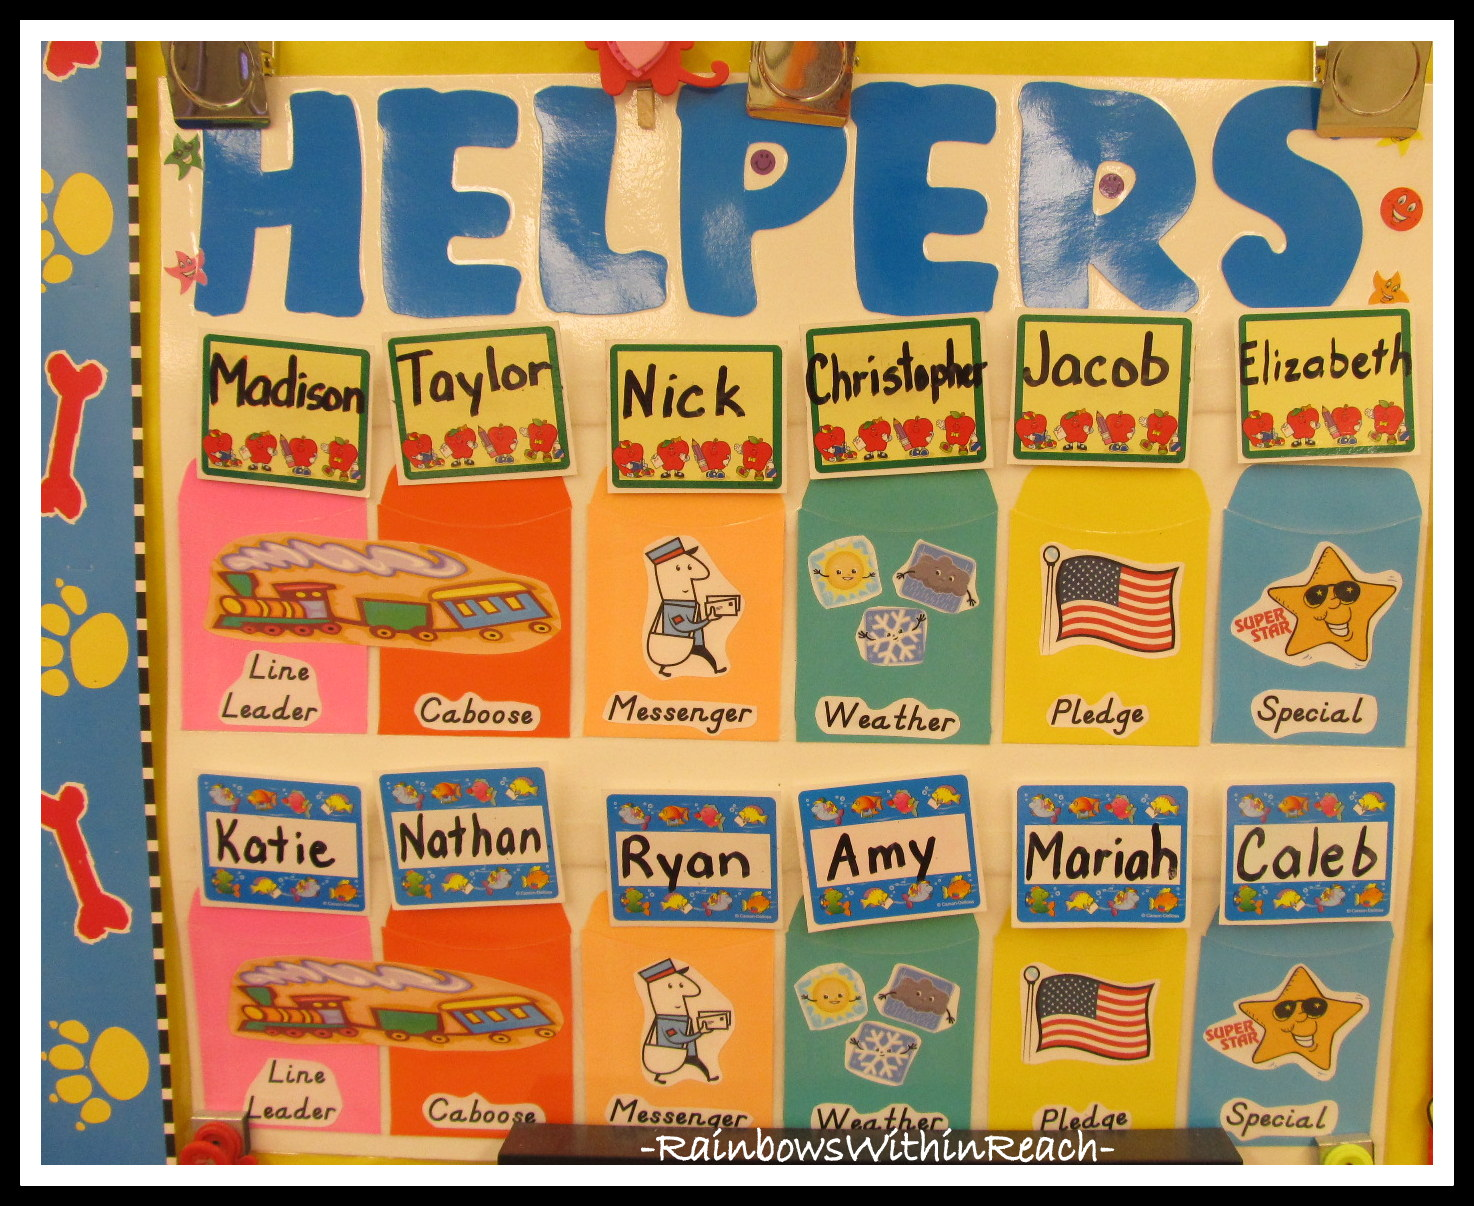 preschool helper chart Classroom helper bulletin board chart organize your classroom with a simple pocket classroom helper chart rotate children's names to give them special jobs and help them feel like a special part of the classroom.